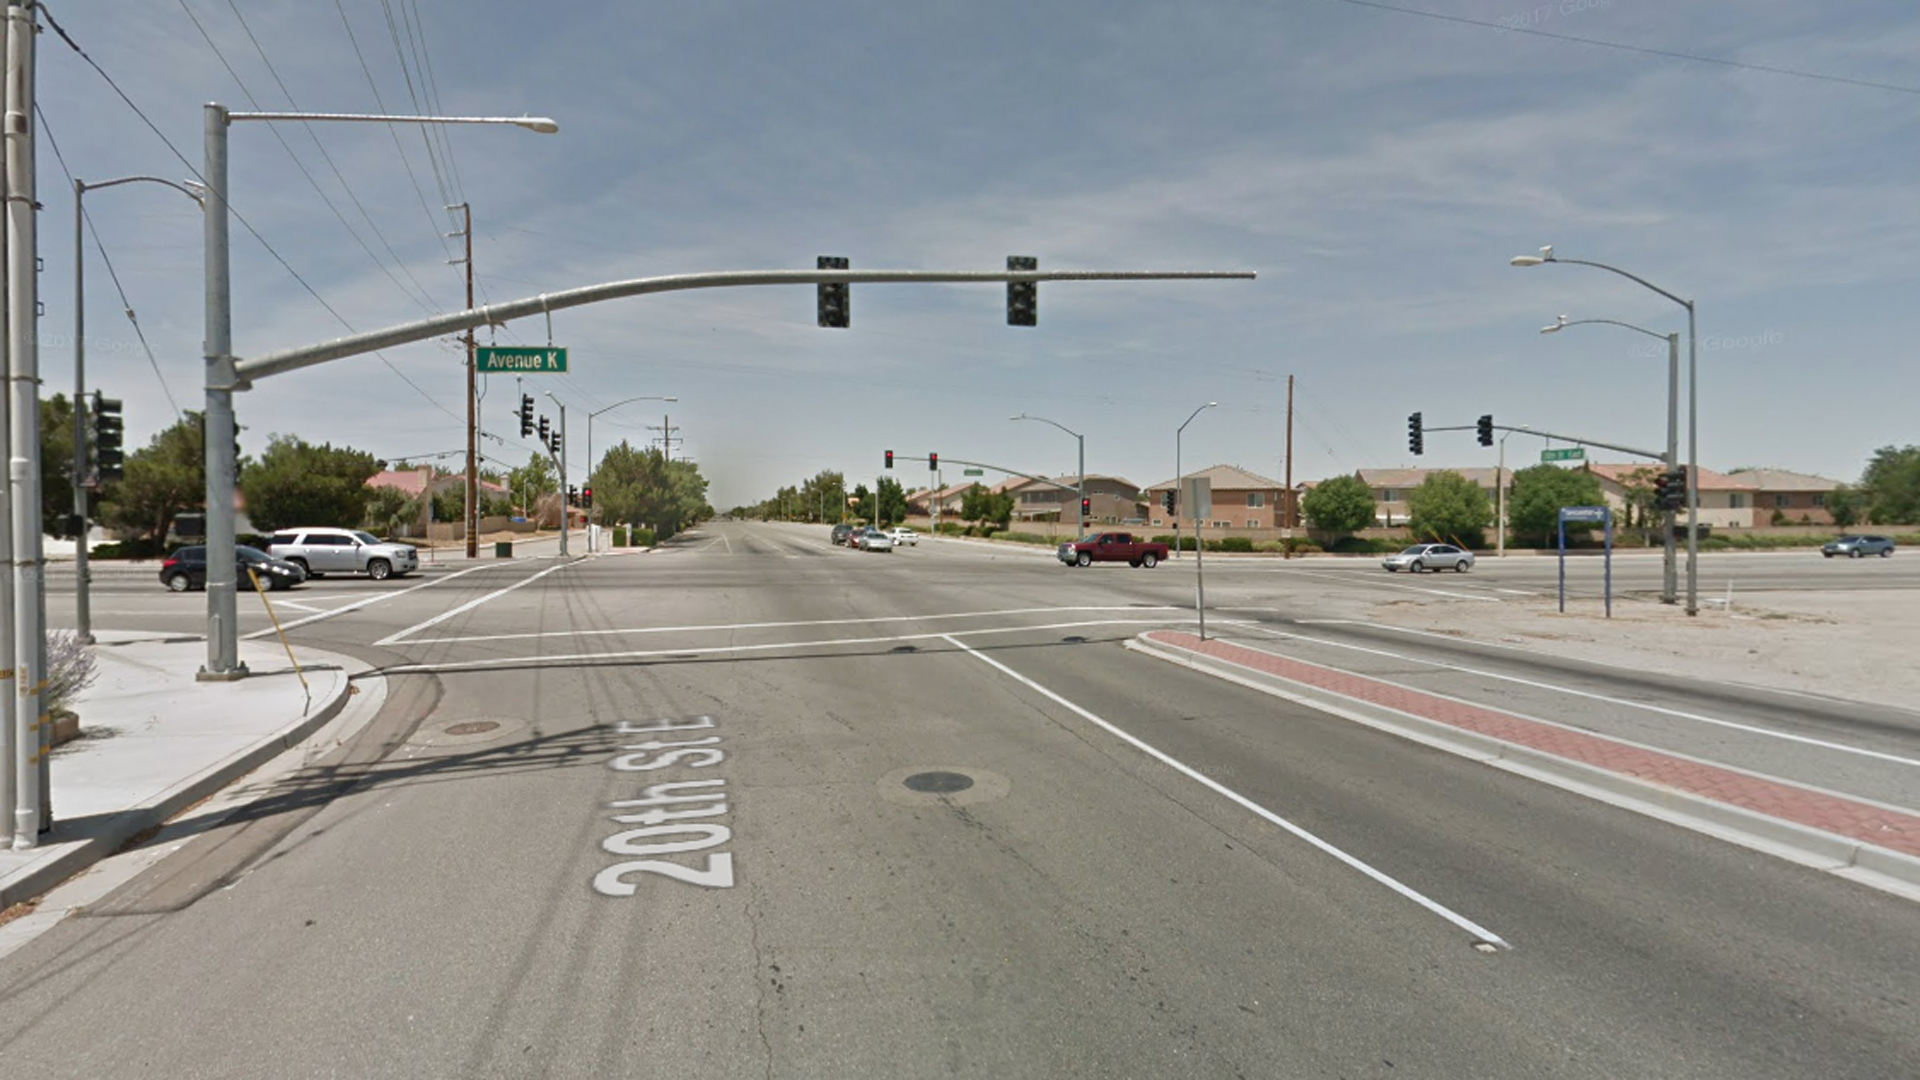 The intersection of Avenue K and 20th Street East in Lancaster is seen in a Google Maps Street View image from June 2016.